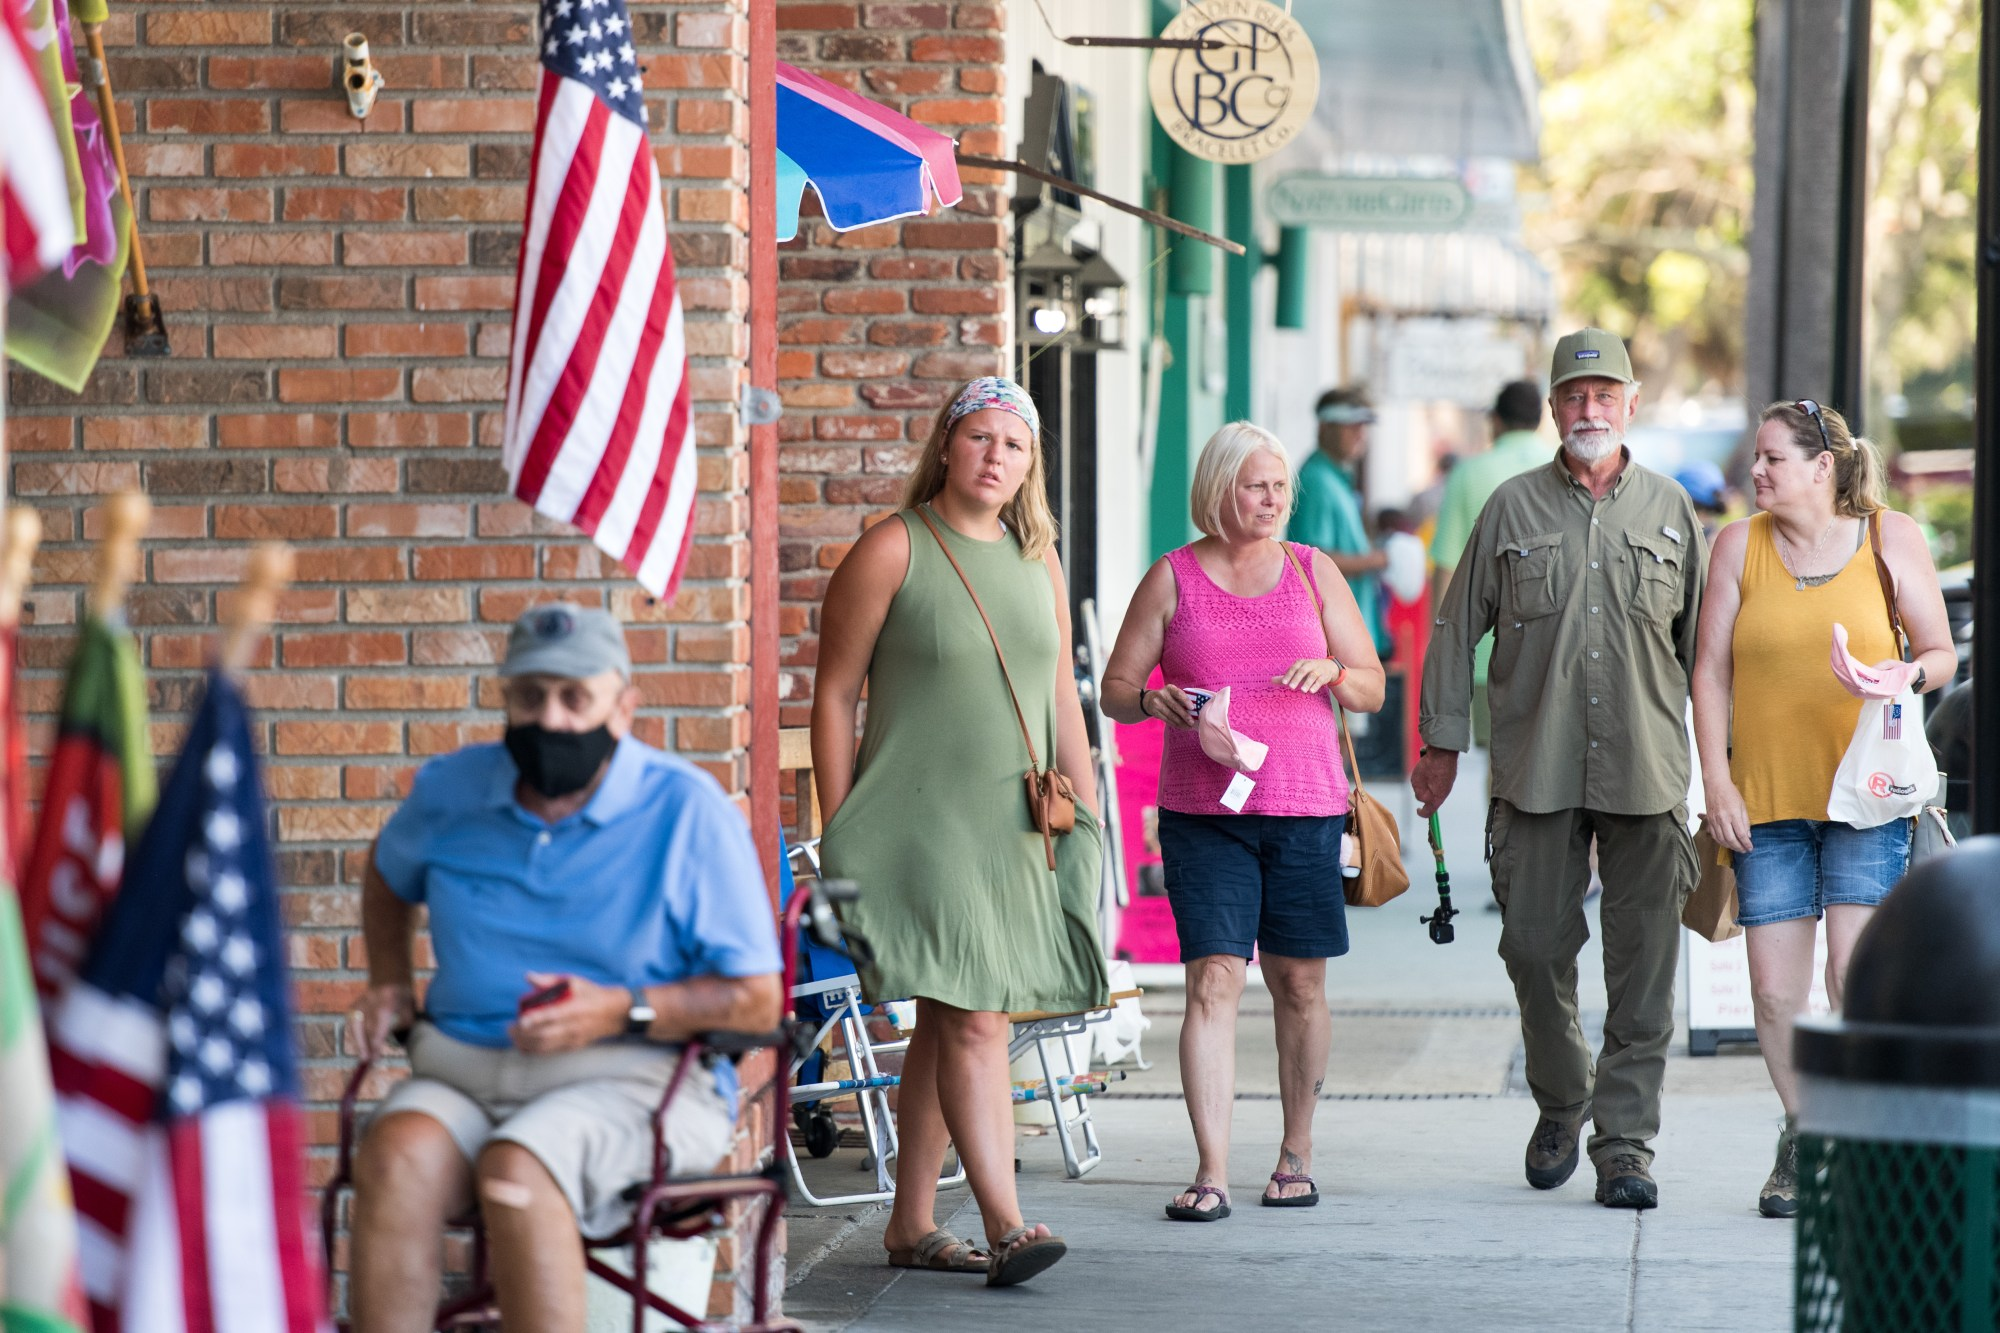 People walk down the sidewalk on July 17, 2020, in St. Simons Island, Georgia. Georgia Gov. Brian Kemp made an order earlier in the week that forbade municipal officials from setting mandatory face-covering policies. (Sean Rayford/Getty Images)